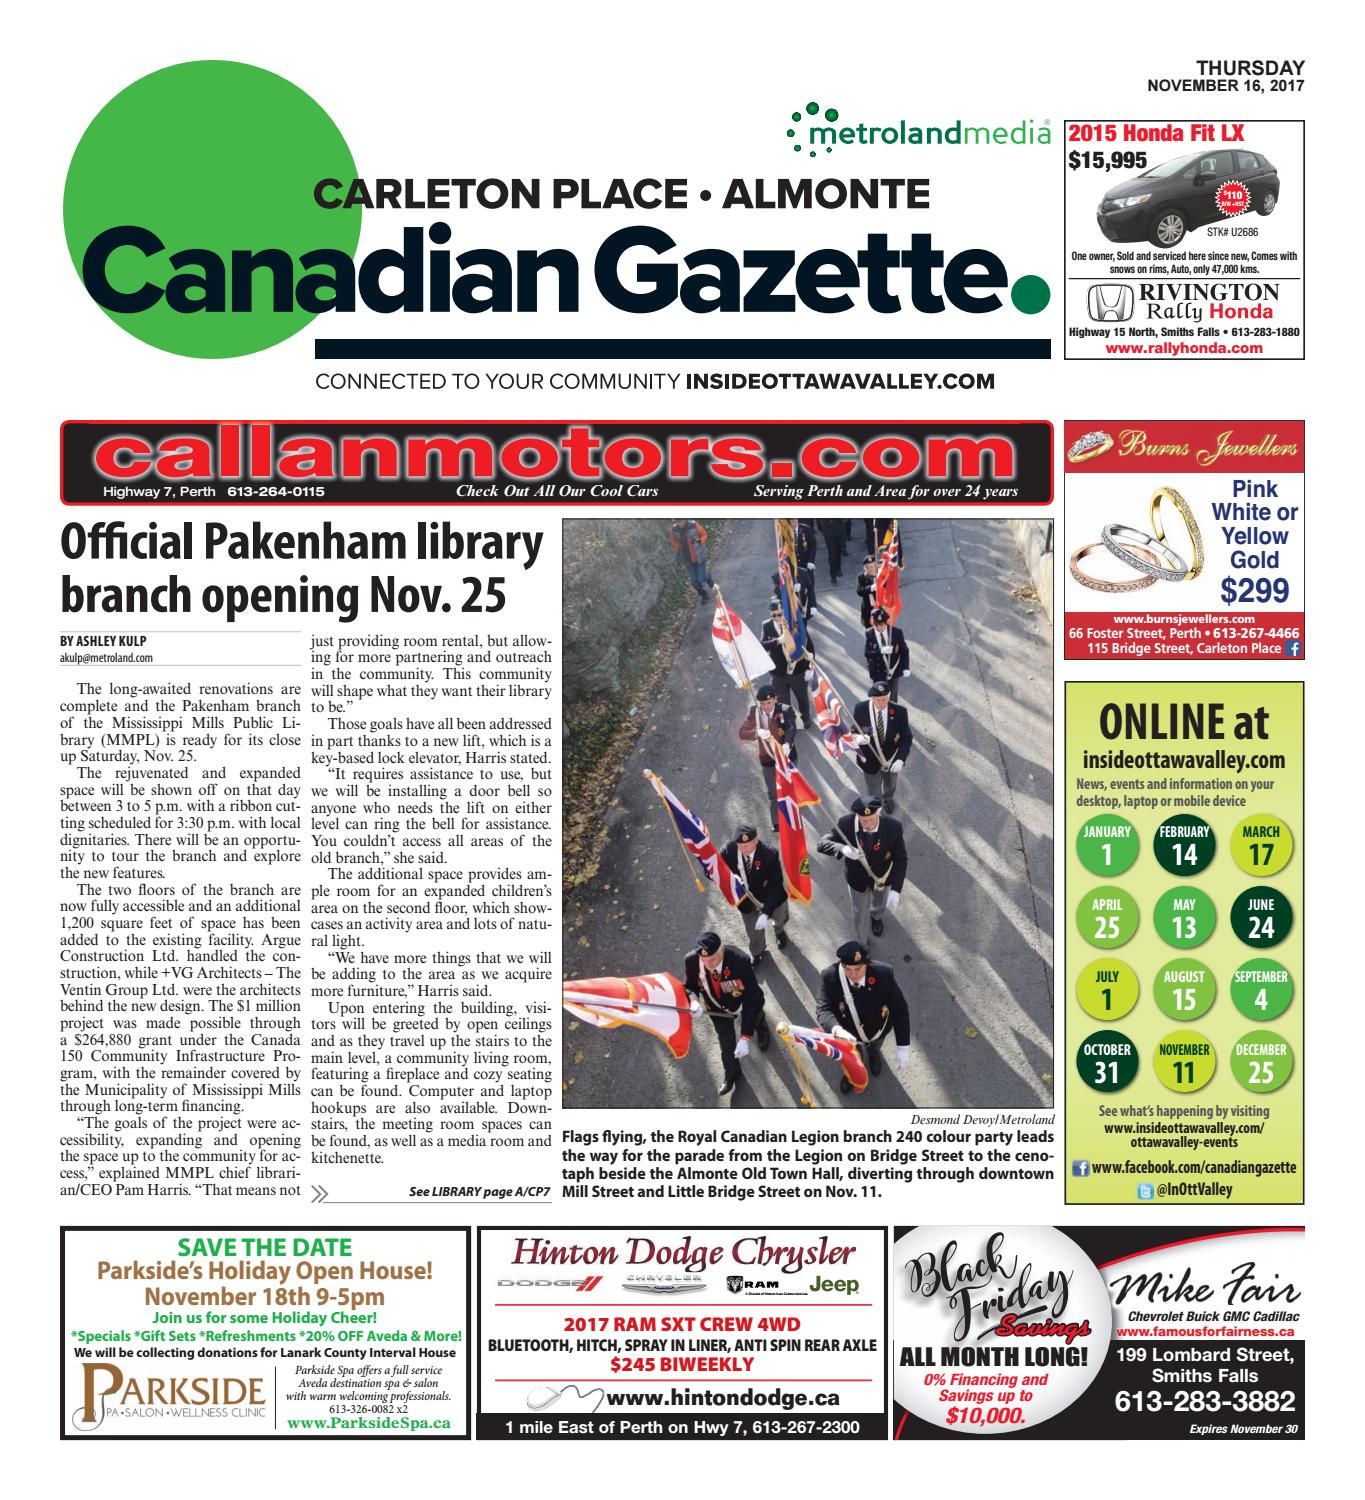 Almontecarletonplace111617 by metroland east almonte carleton almontecarletonplace111617 by metroland east almonte carleton place canadian gazette issuu fandeluxe Choice Image